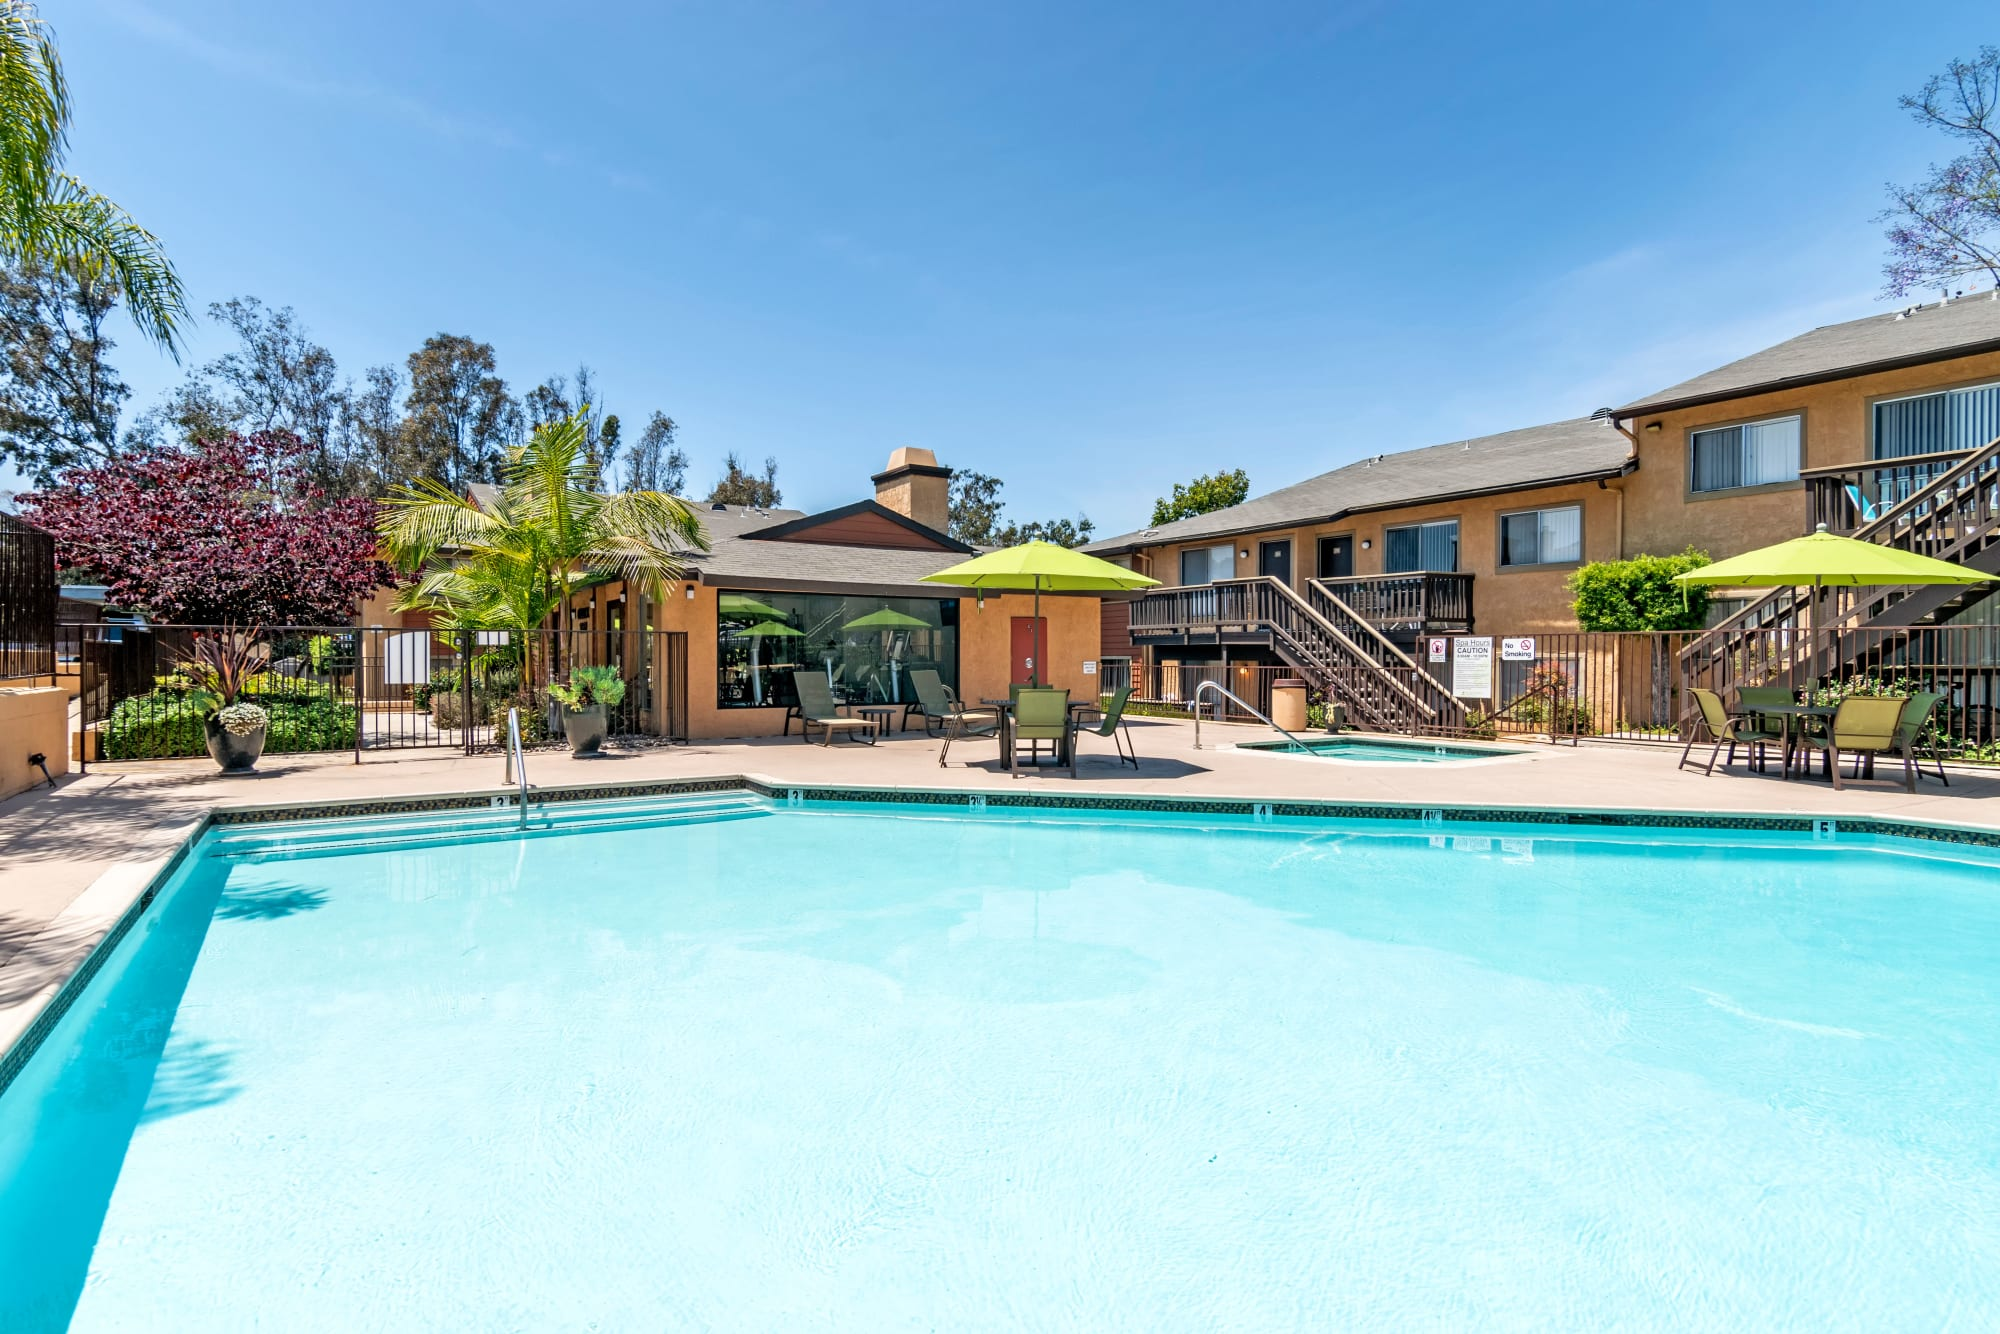 The sparkling swimming pool on a sunny day at Hillside Terrace Apartments in Lemon Grove, California